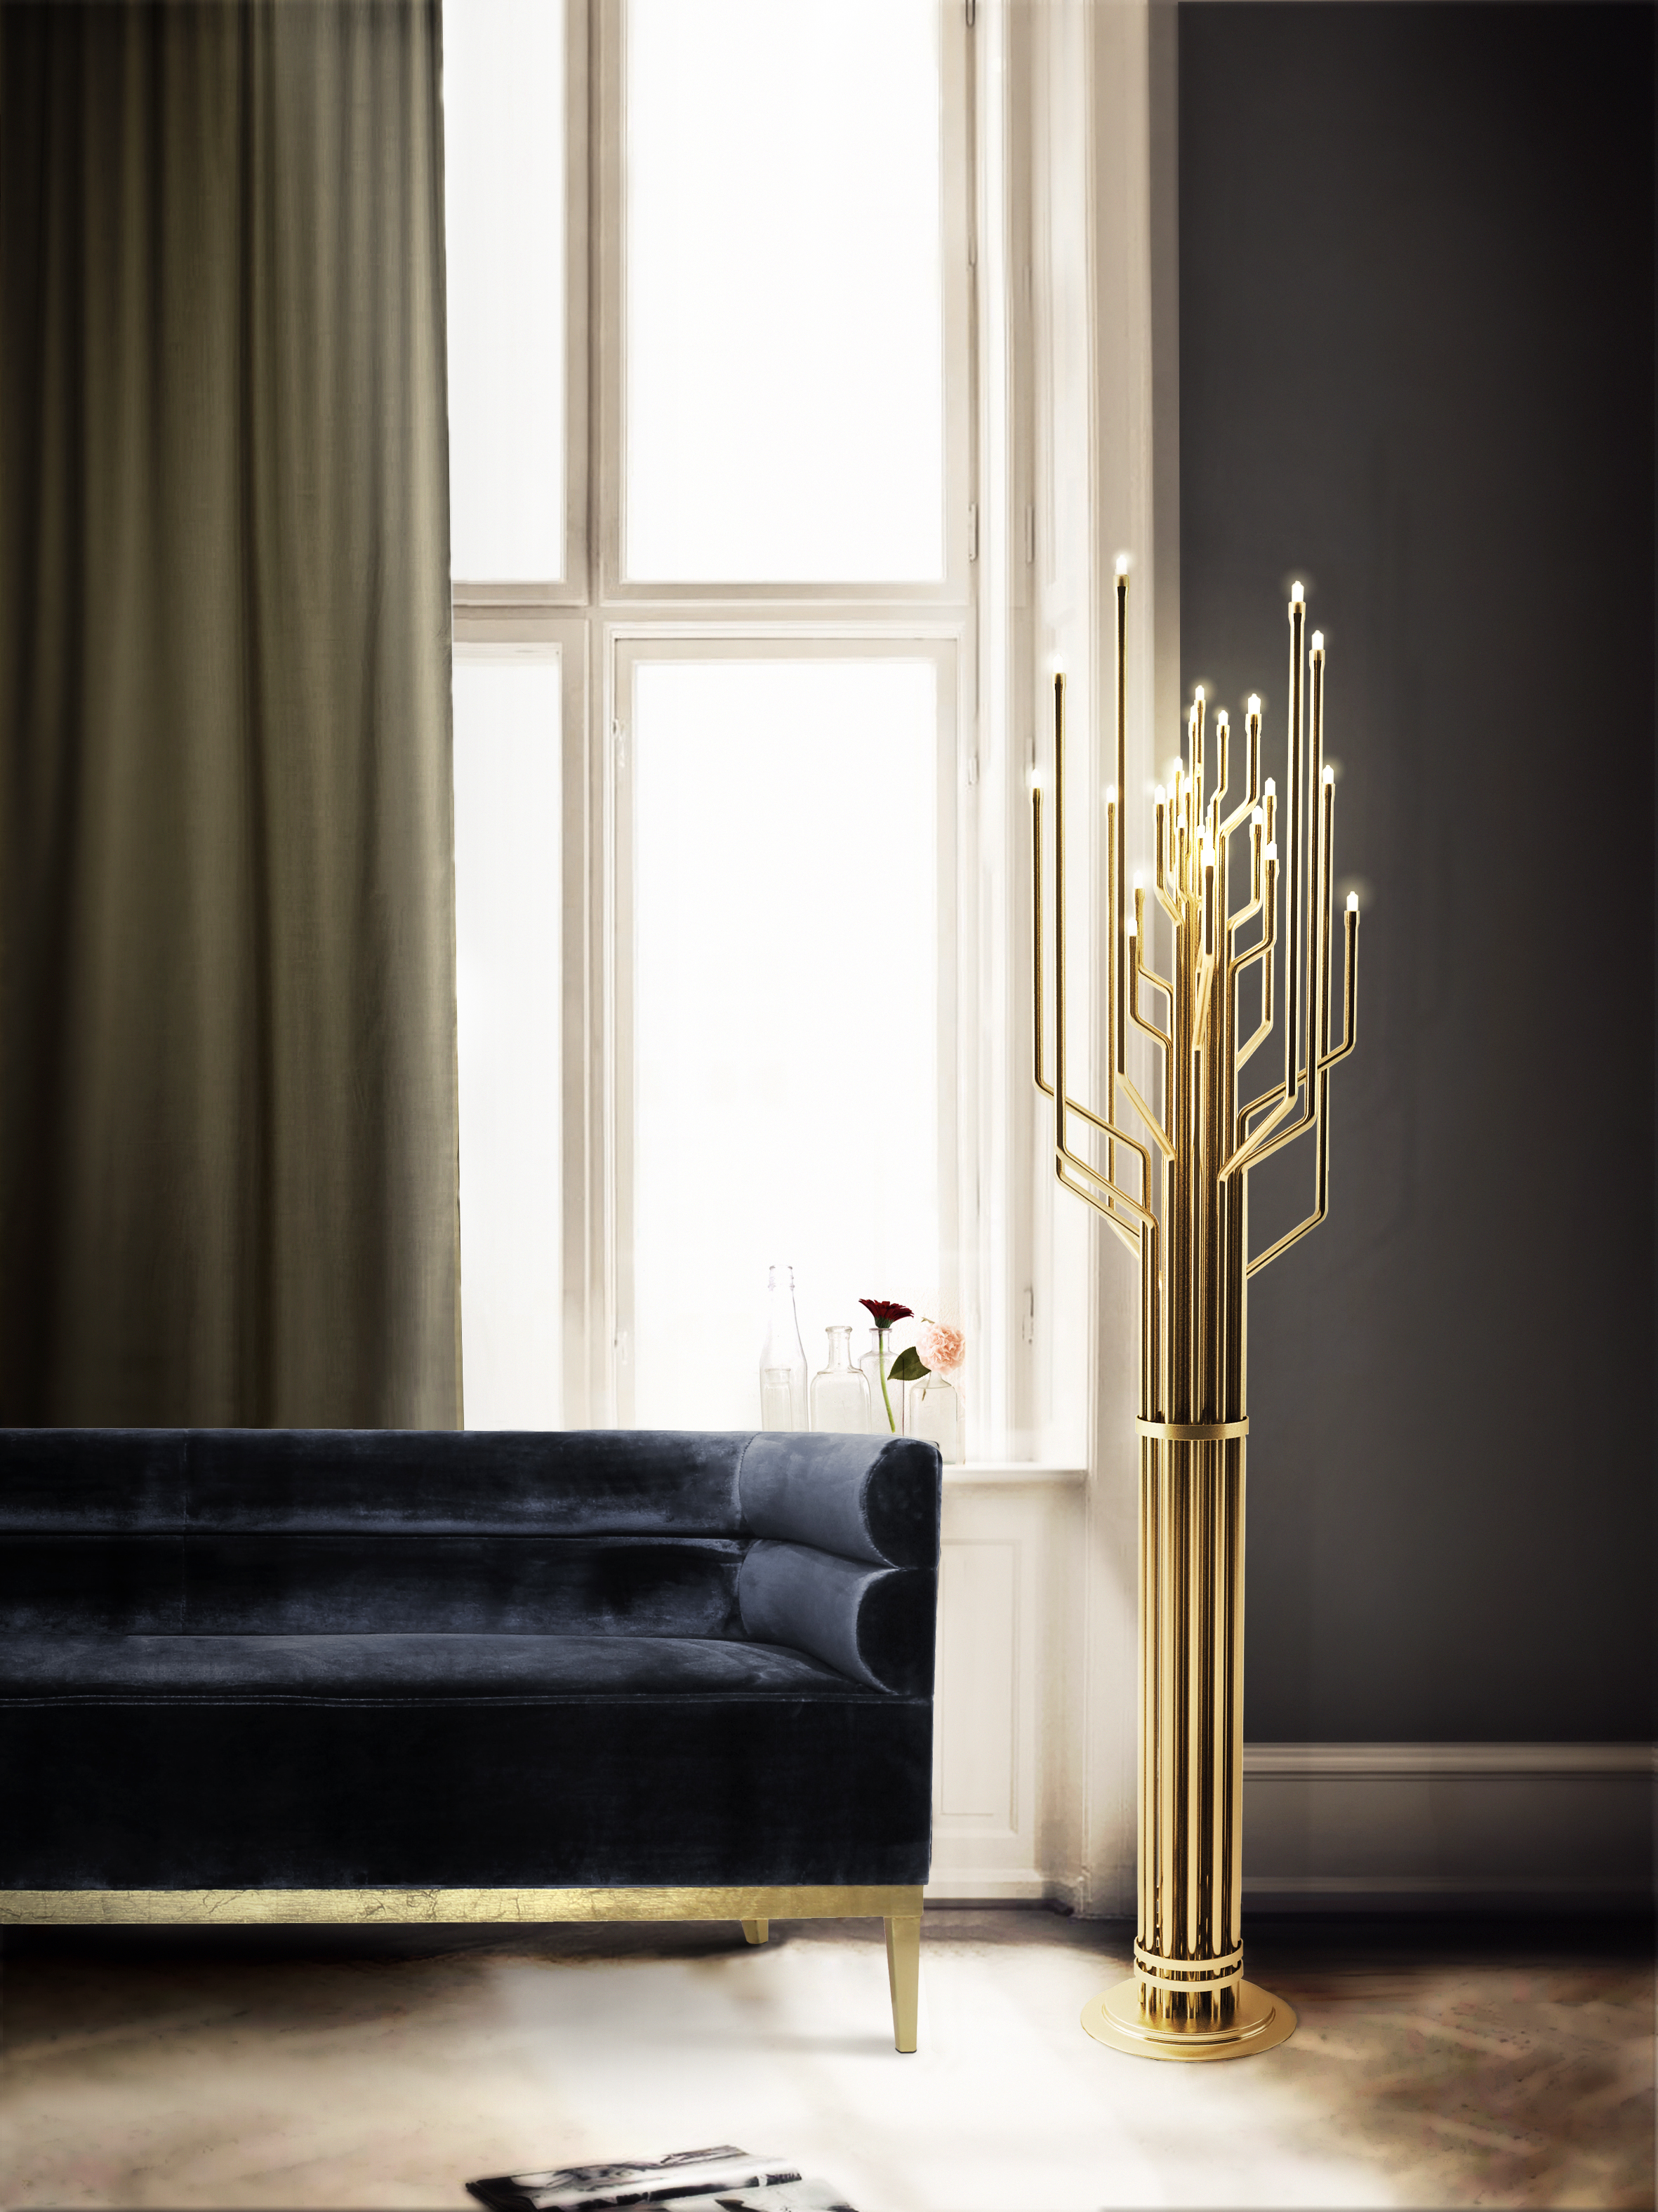 gold-plated floor lamp Get A Gold-Plated Floor Lamp At Discount Price With Floor Samples Get A Gold Plated Floor Lamp At Discount Price With Floor Samples 6